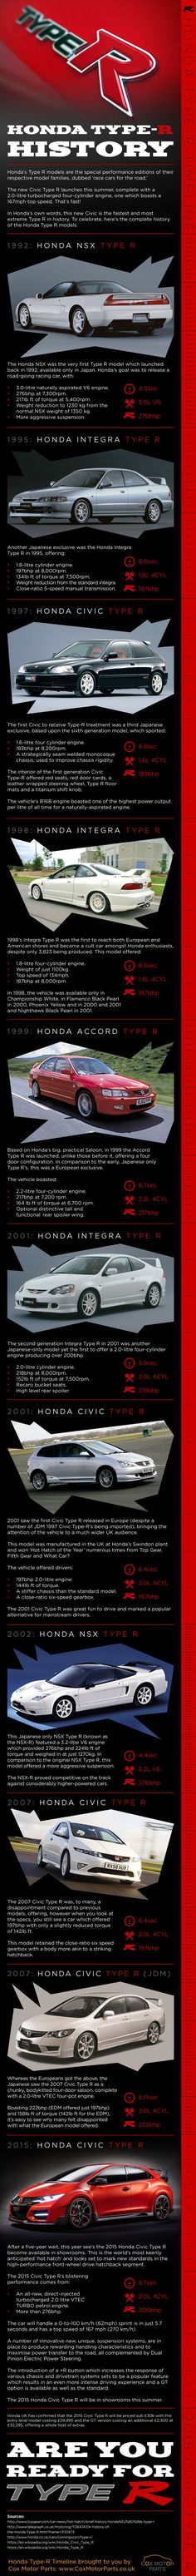 awesome History Of The Honda Type R Honda 2017 Check more at http://carsboard.pro/2017/2016/12/05/history-of-the-honda-type-r-honda-2017/